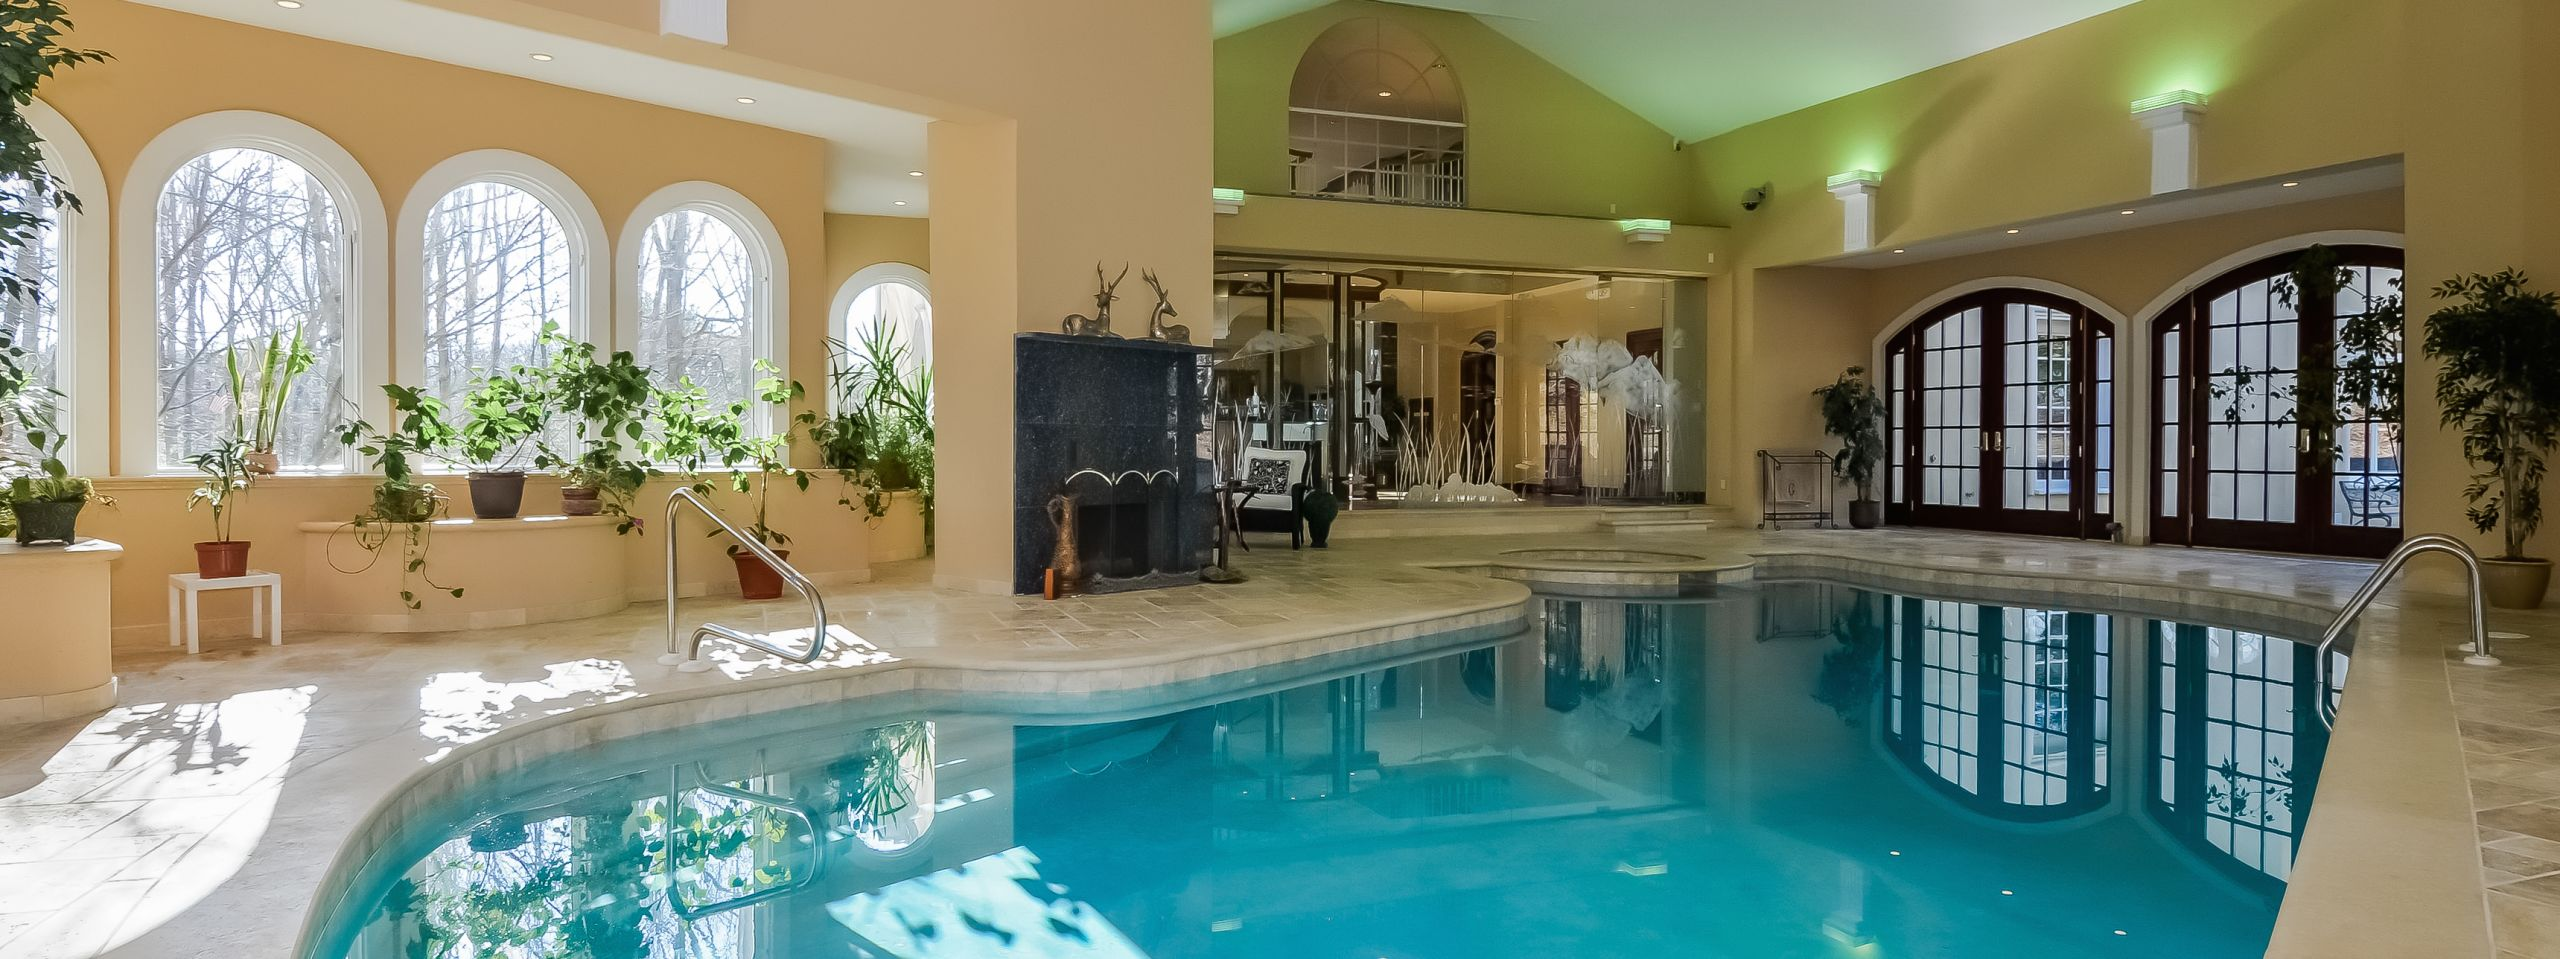 Swim laps daily with this indoor pool!